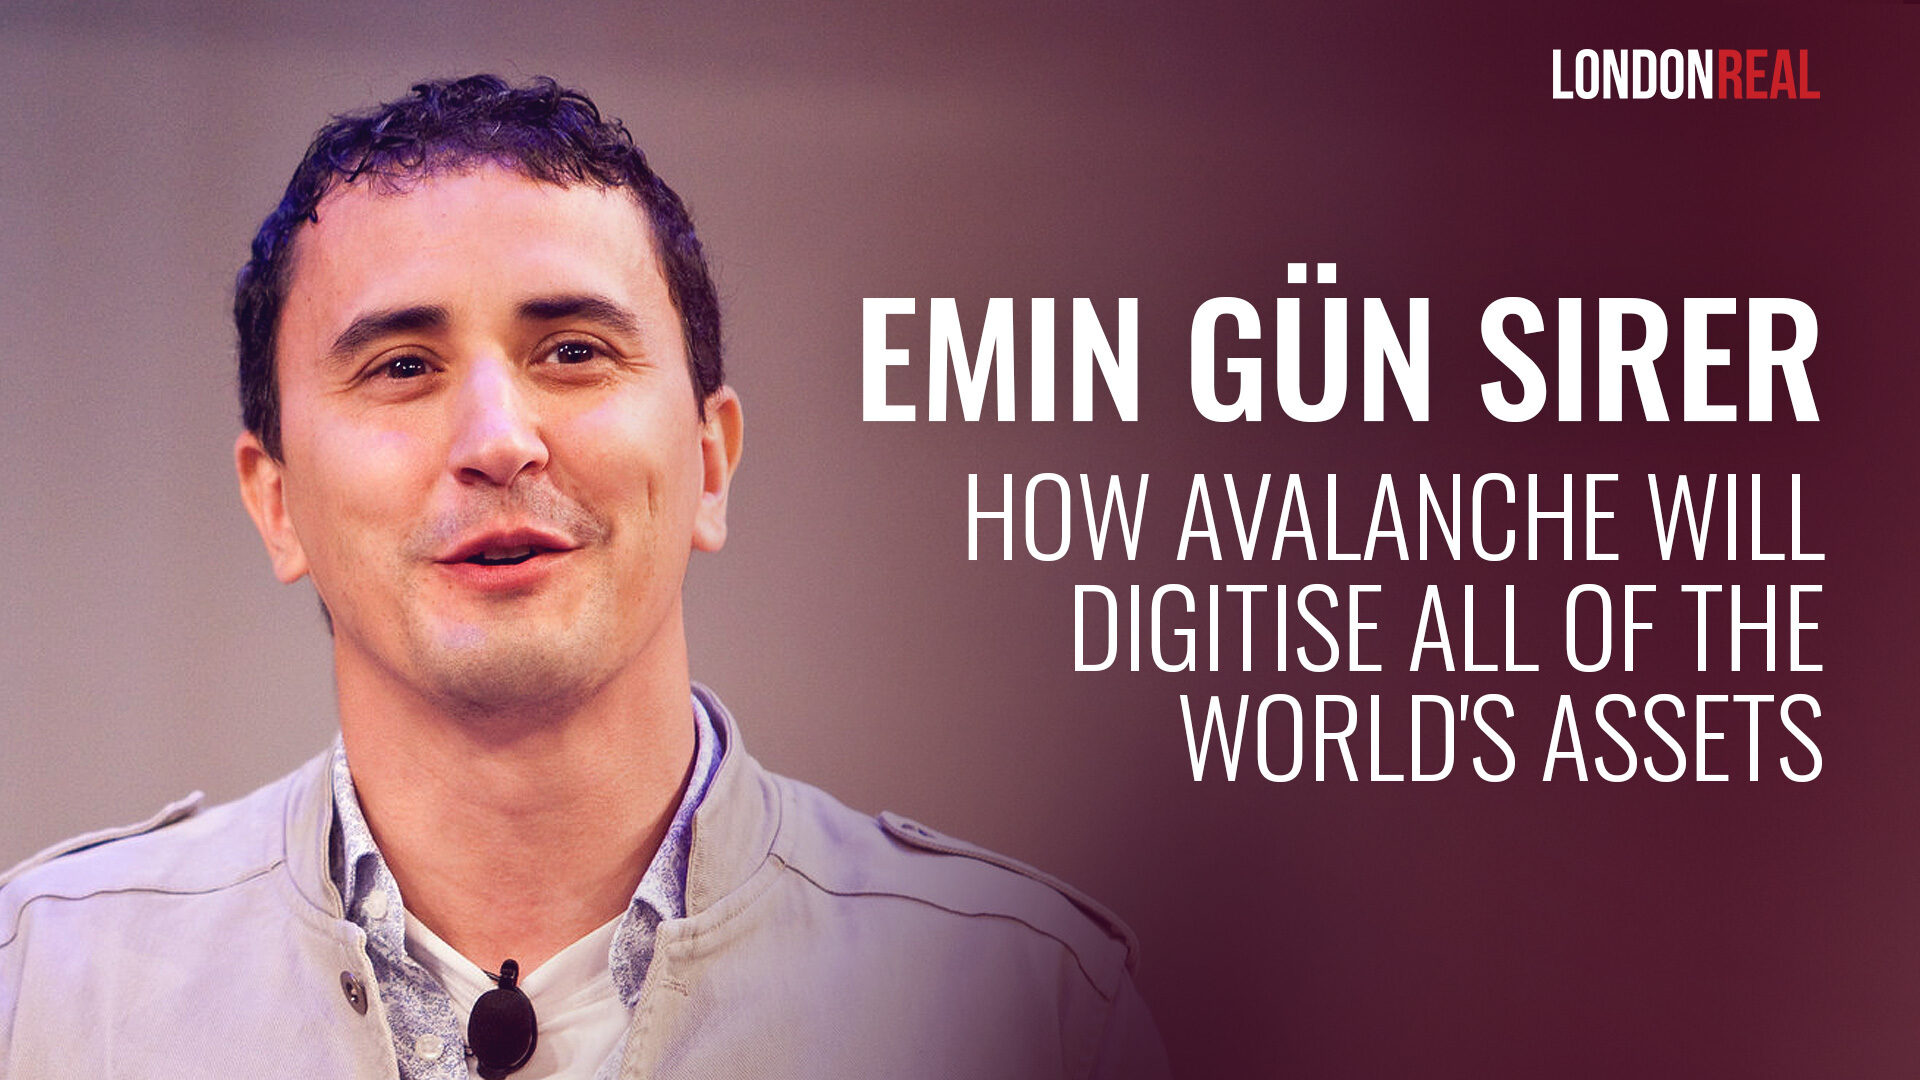 Professor Emin Gün Sirer - How Avalanche Will Digitise All Of The World's Assets